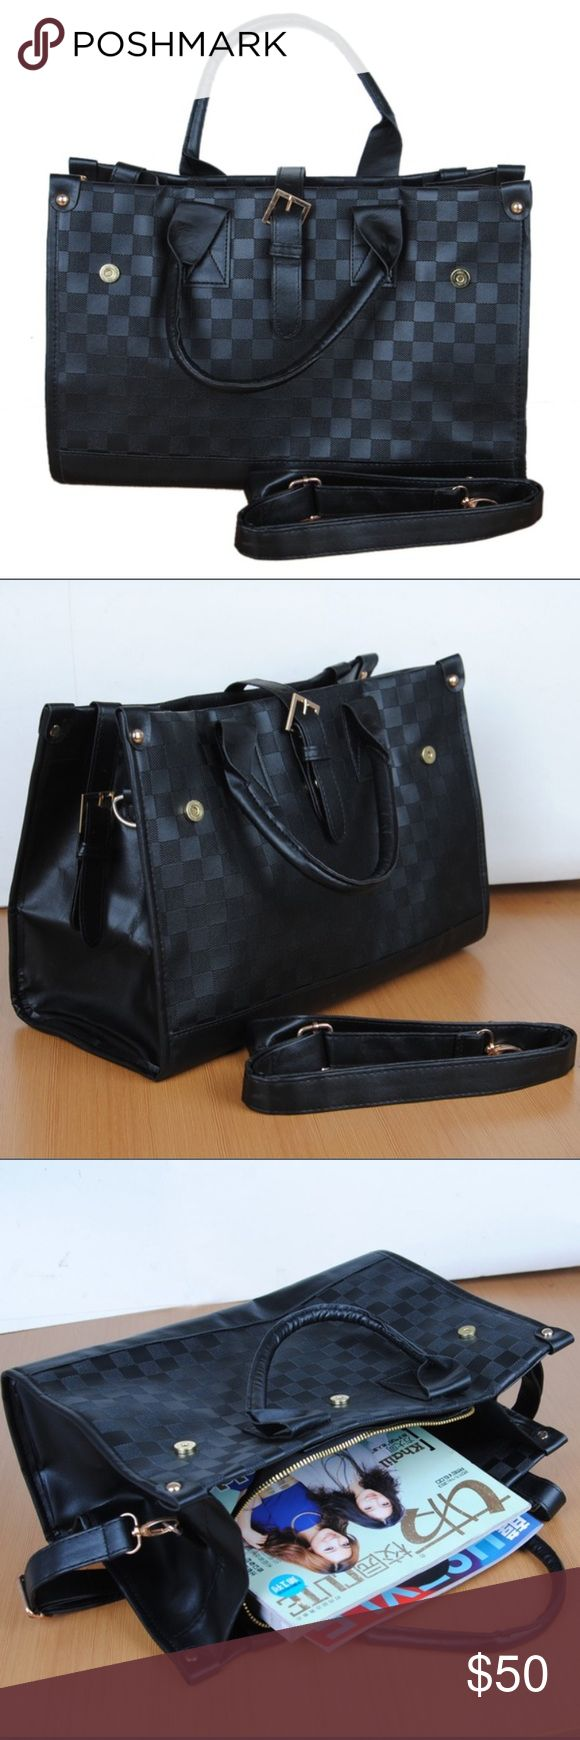 Black Checkered Shoulder Bag This stylish yet neutral Purse goes with anything. Dress it up or down whatever you'd like Bags Shoulder Bags